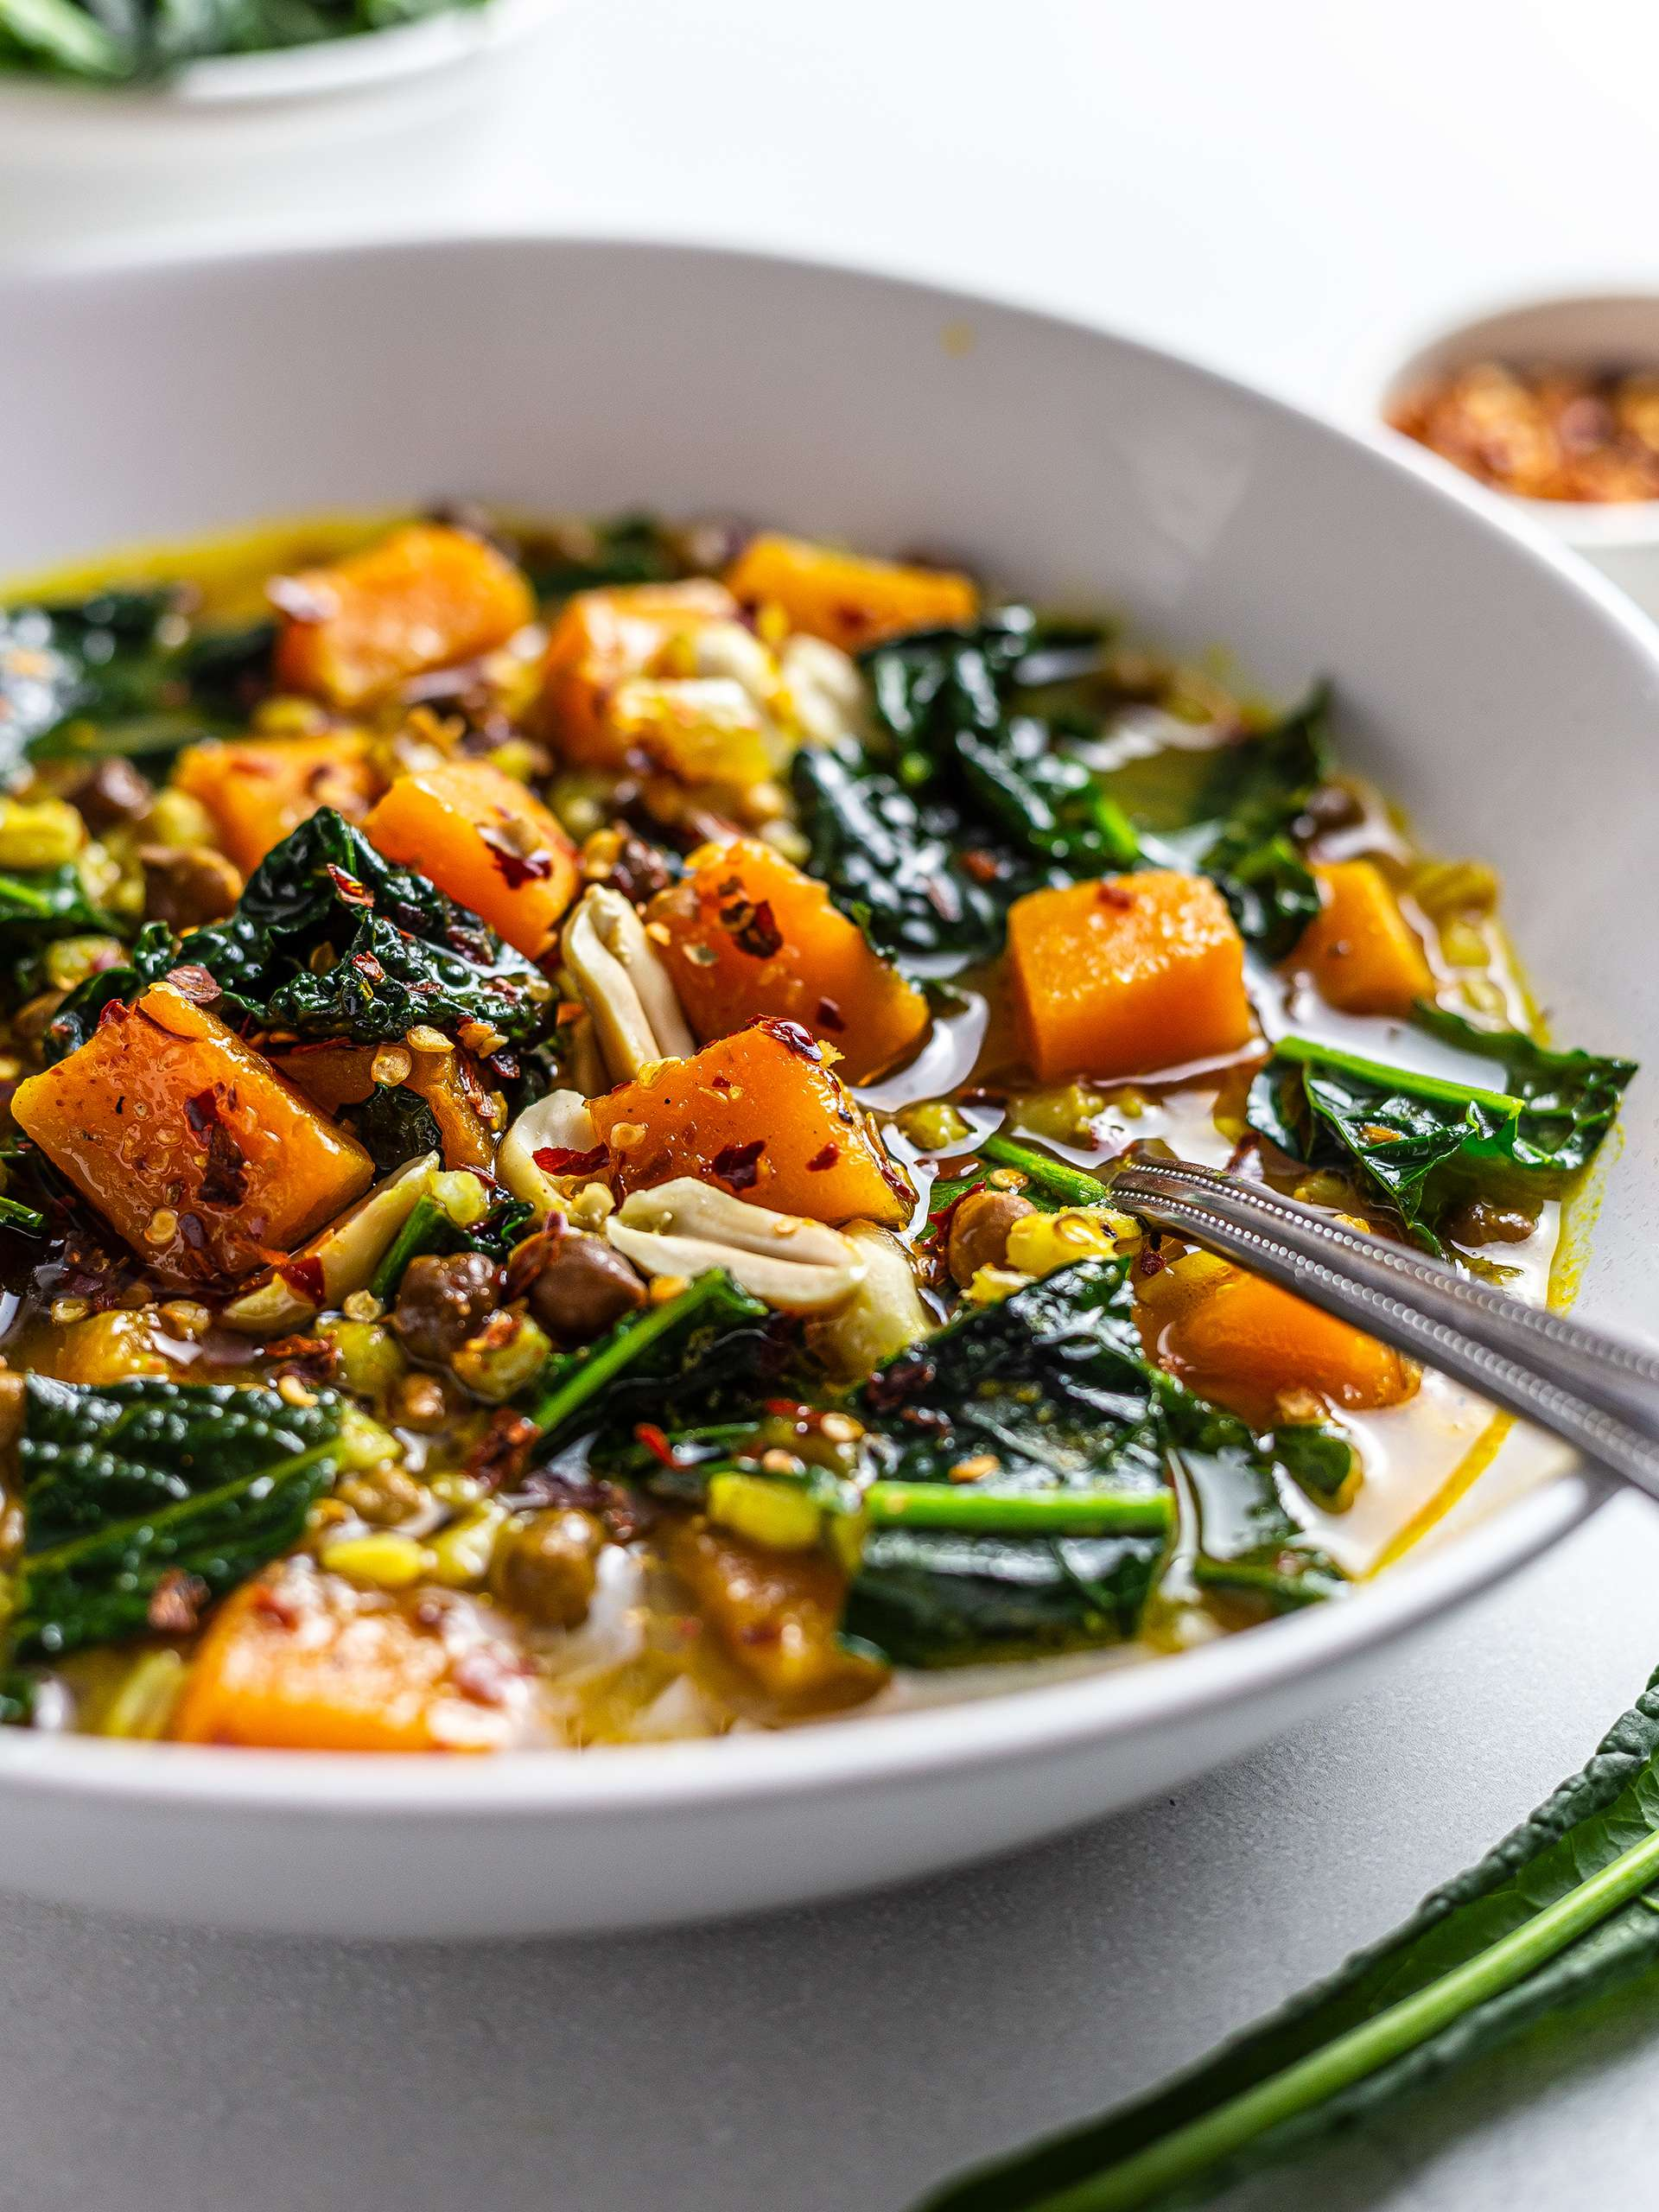 Pumpkin Kale Soup with Brown Chickpeas